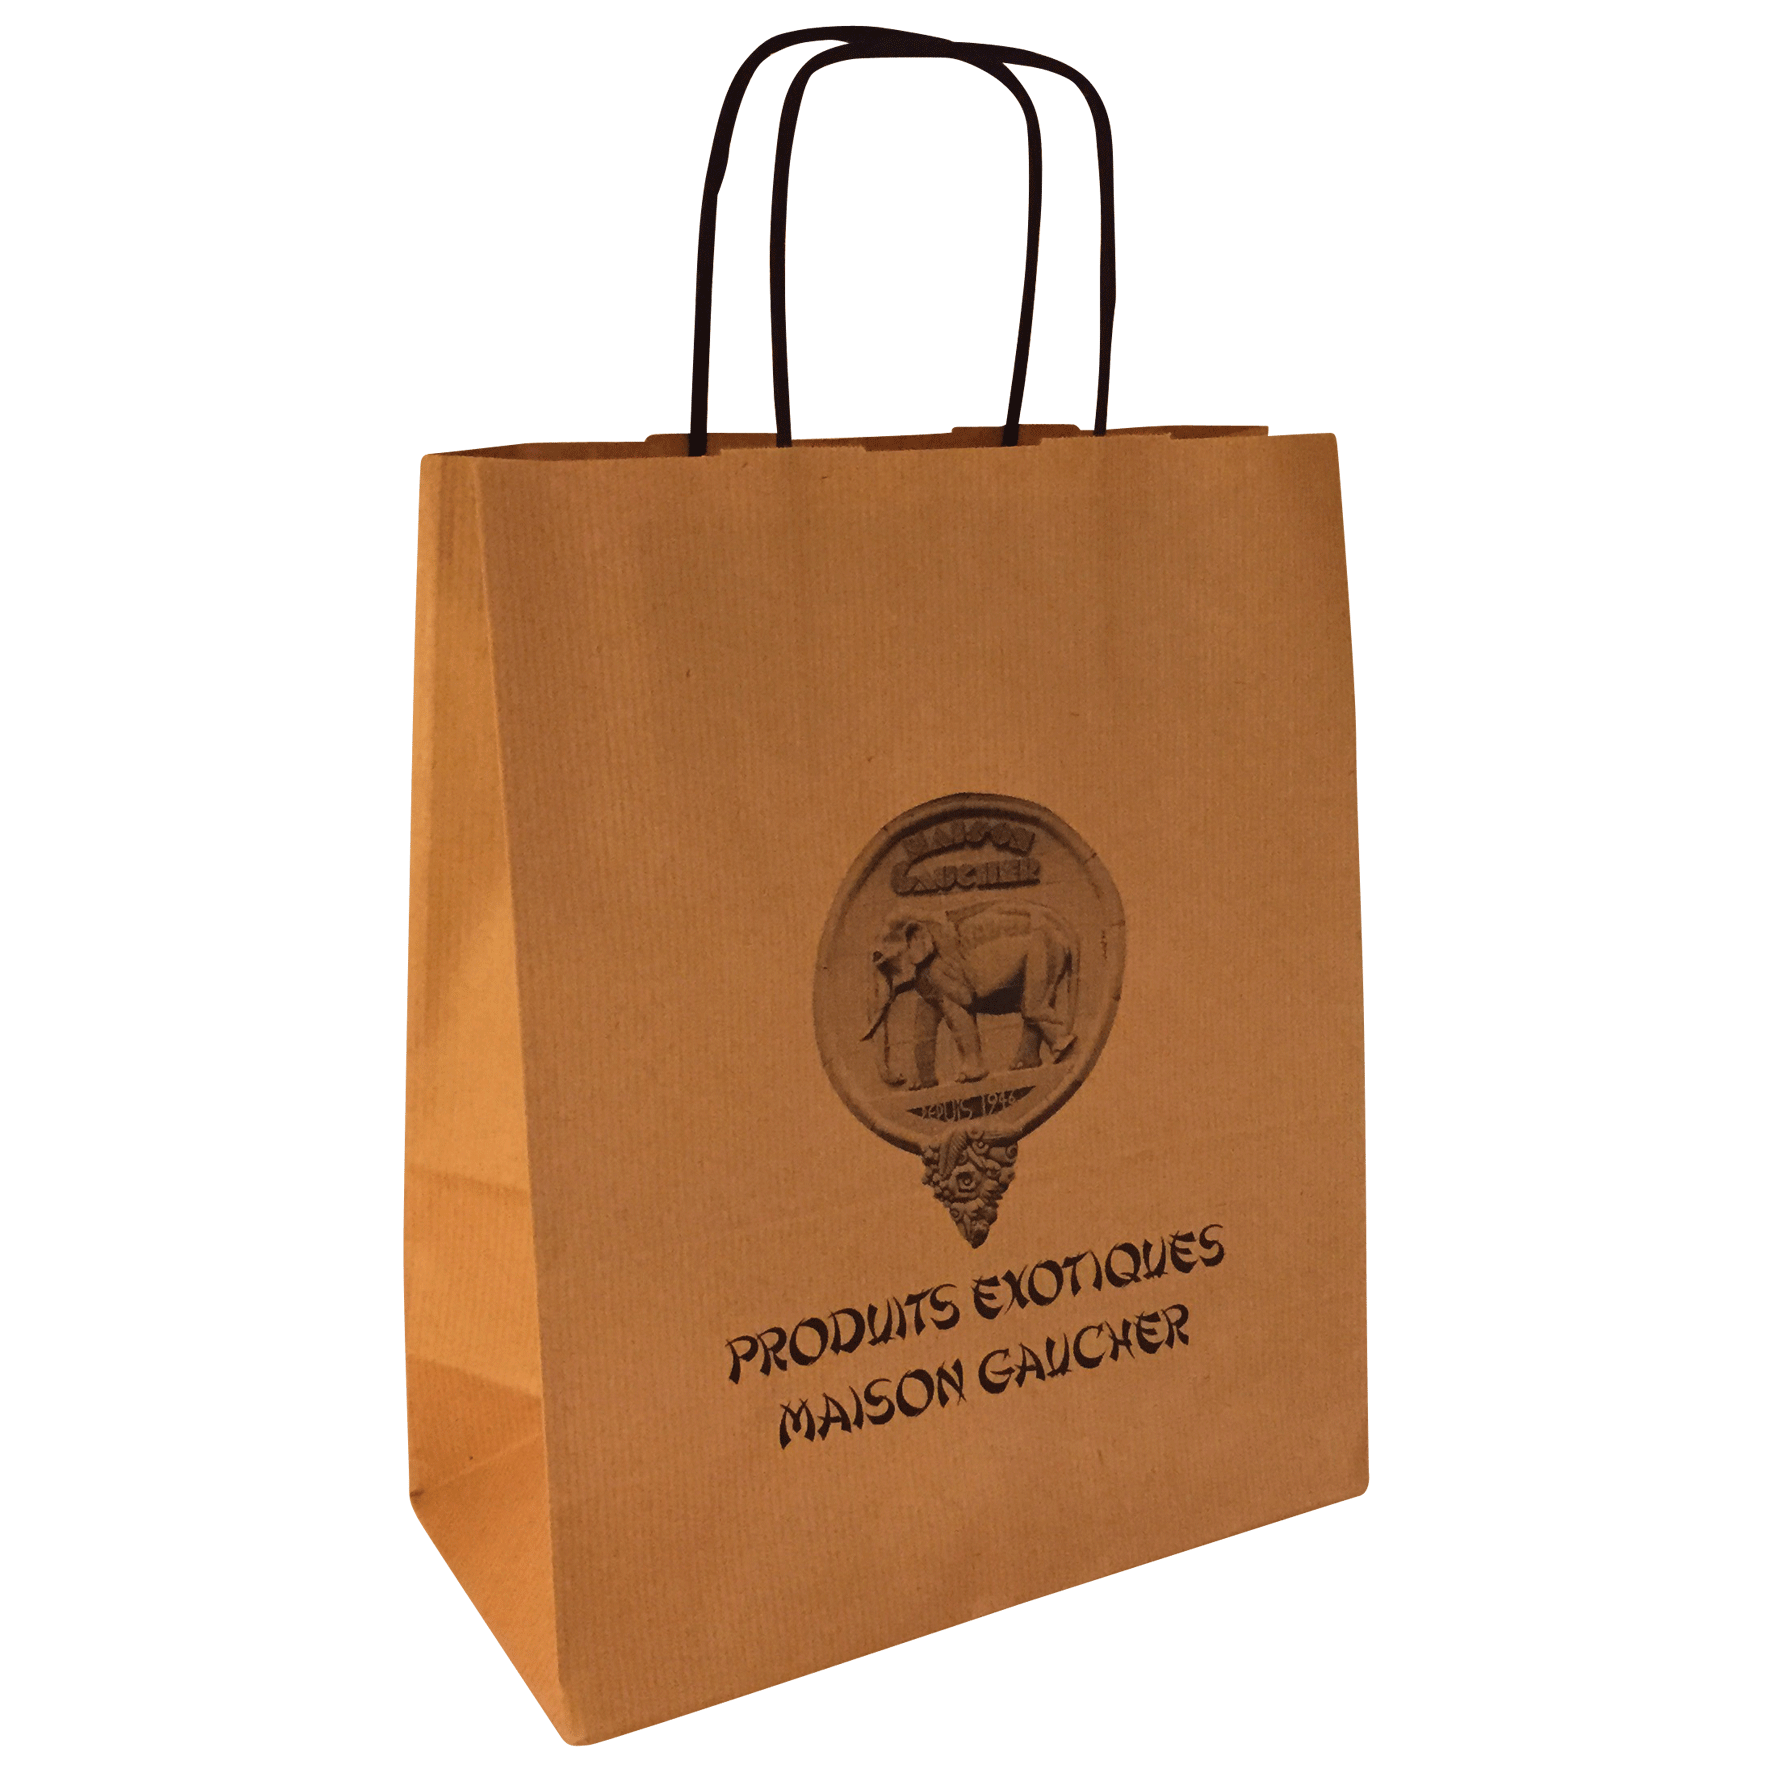 Paper Gift Bags Wholesale Promotional And Gift Bags Wholesale Ecological Bags